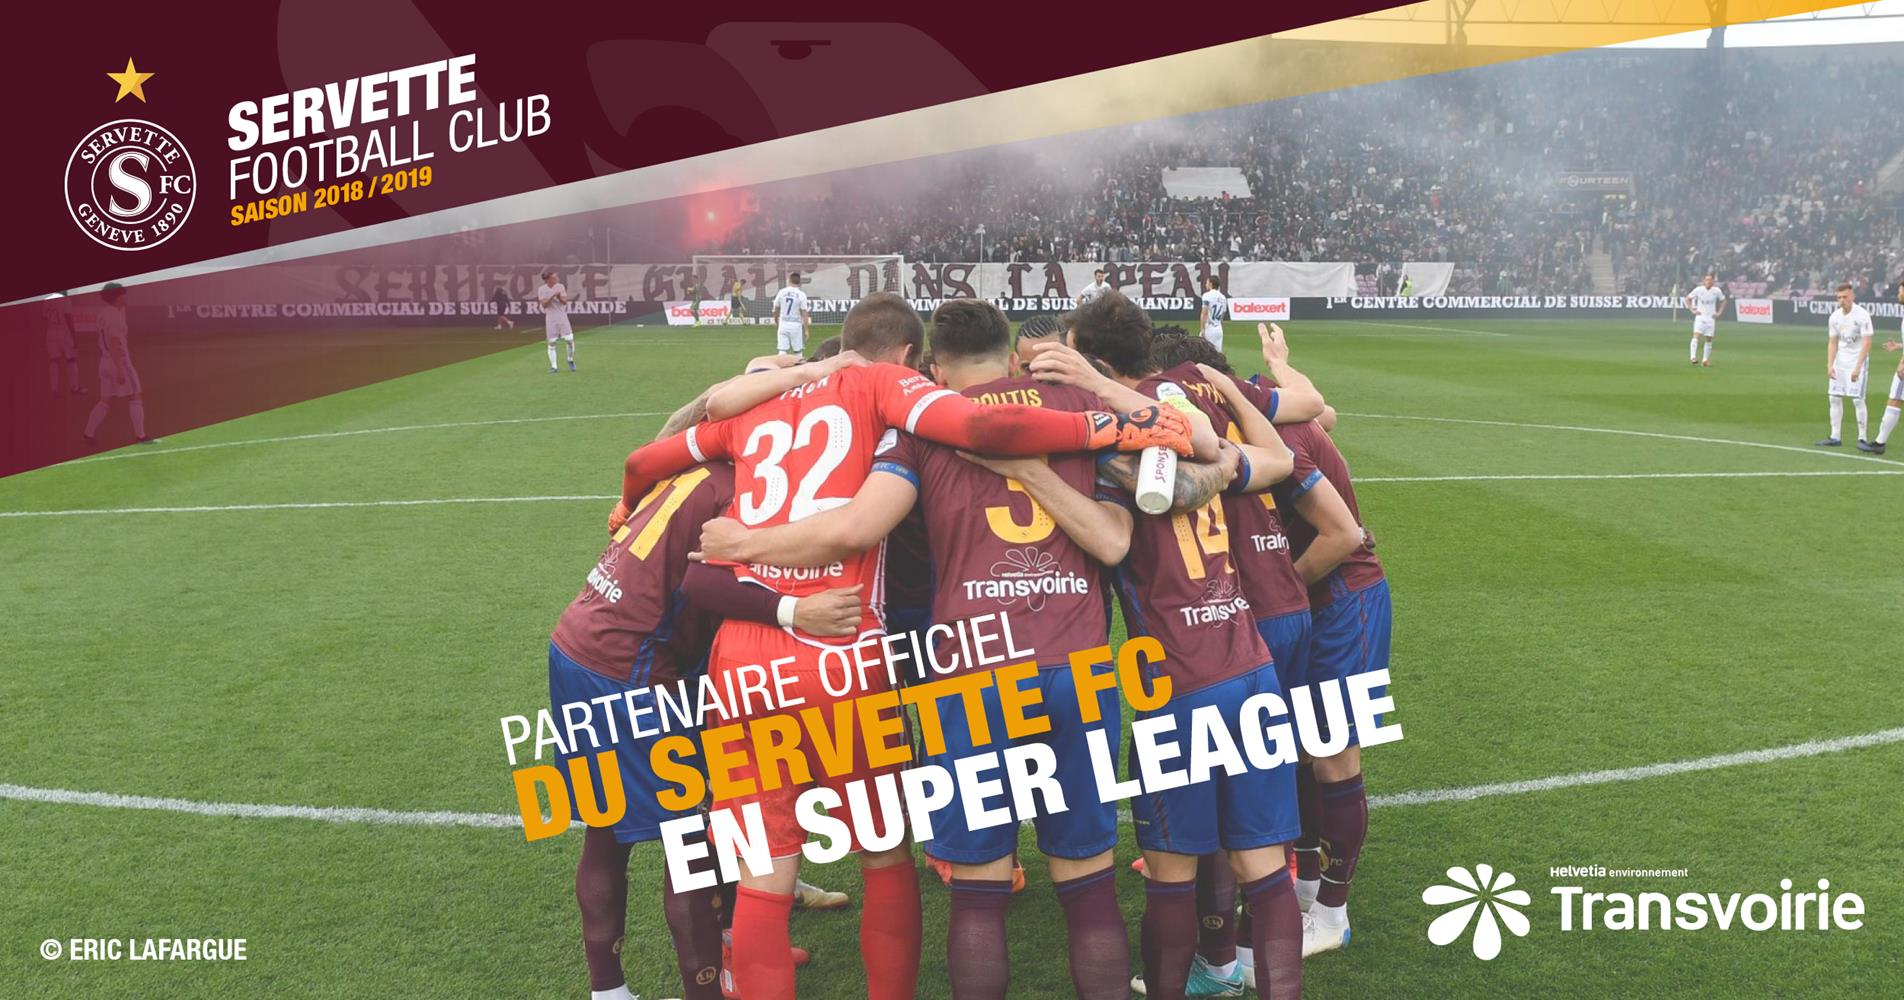 Transvoirie prolonge son partenariat auprès du Servette Football Club